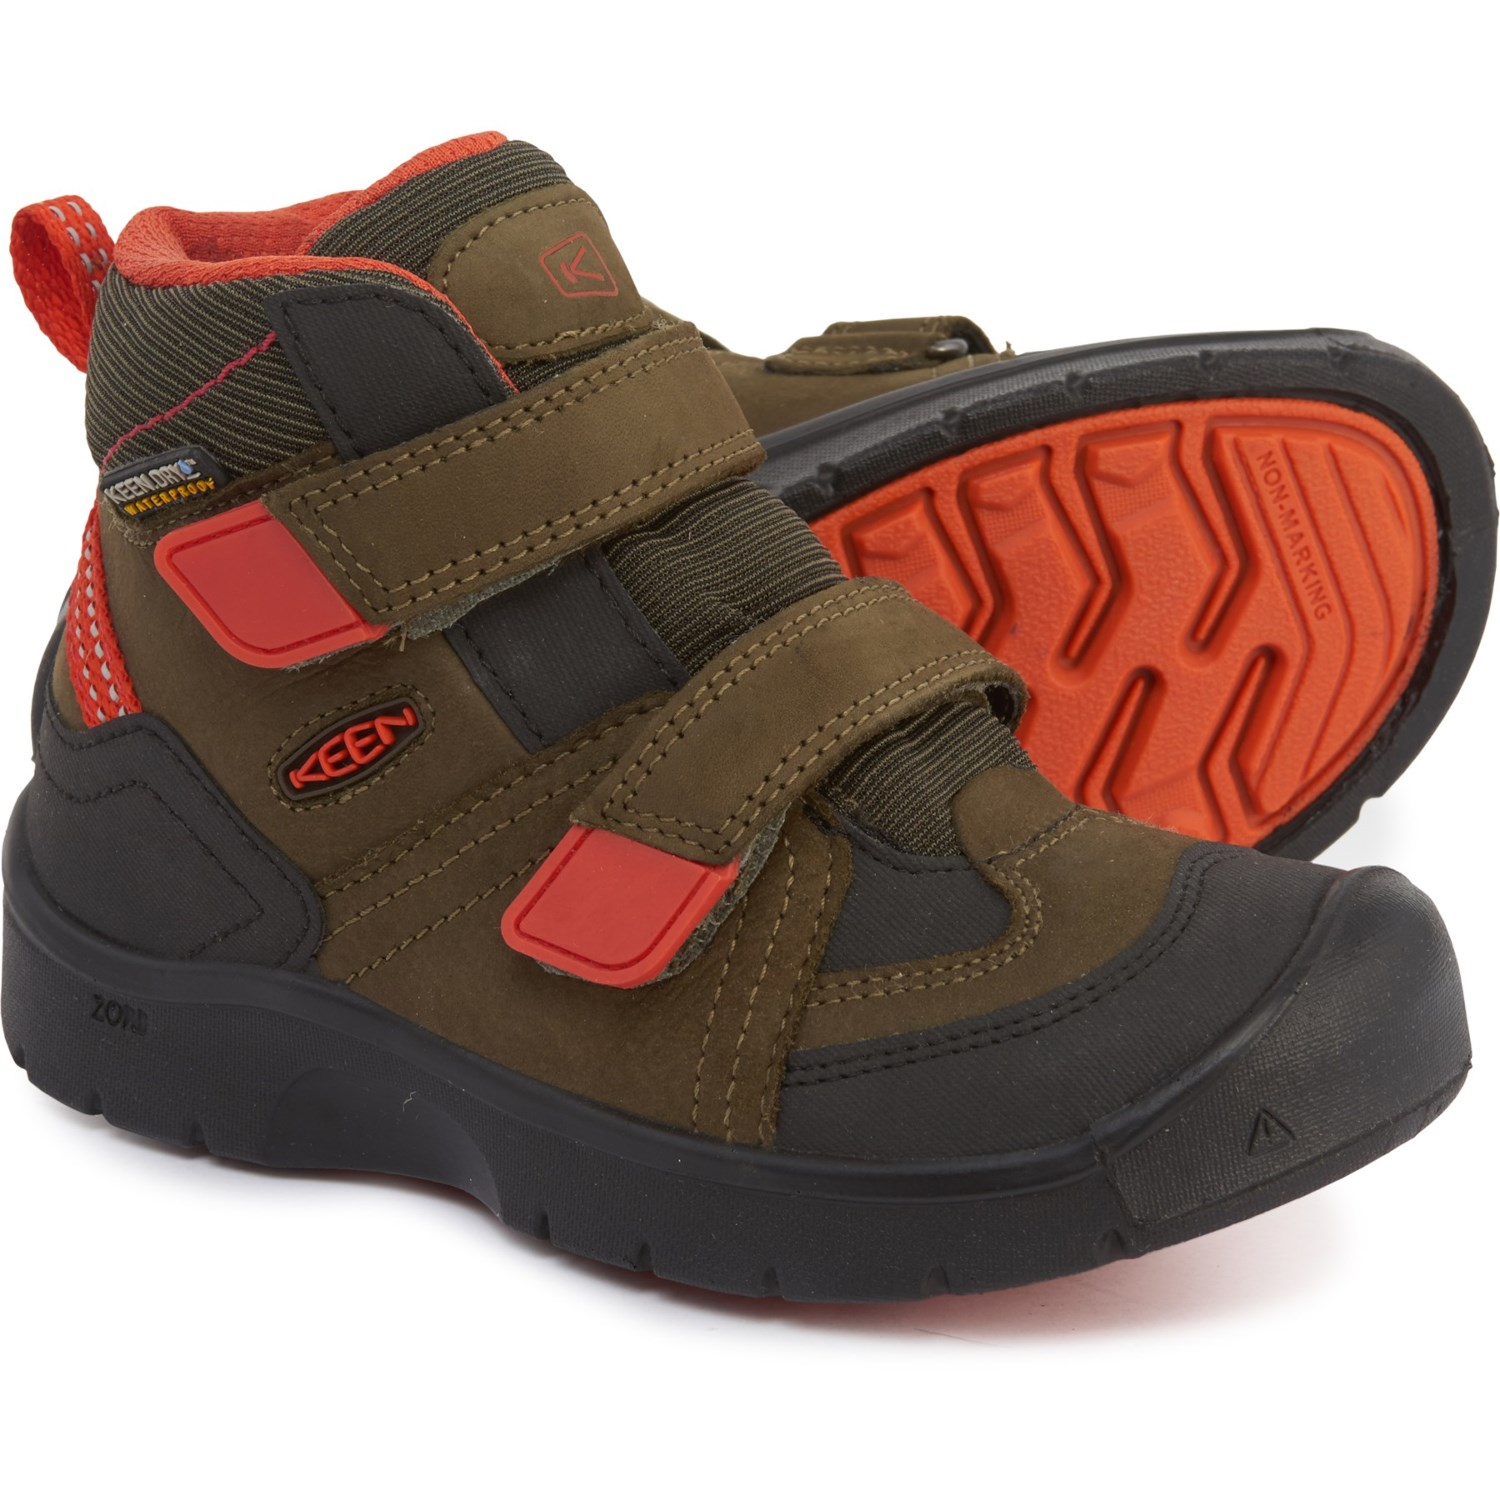 on sale f7427 c9a55 Keen Hikeport Mid Strap Hiking Boots (For Toddler Boys ...